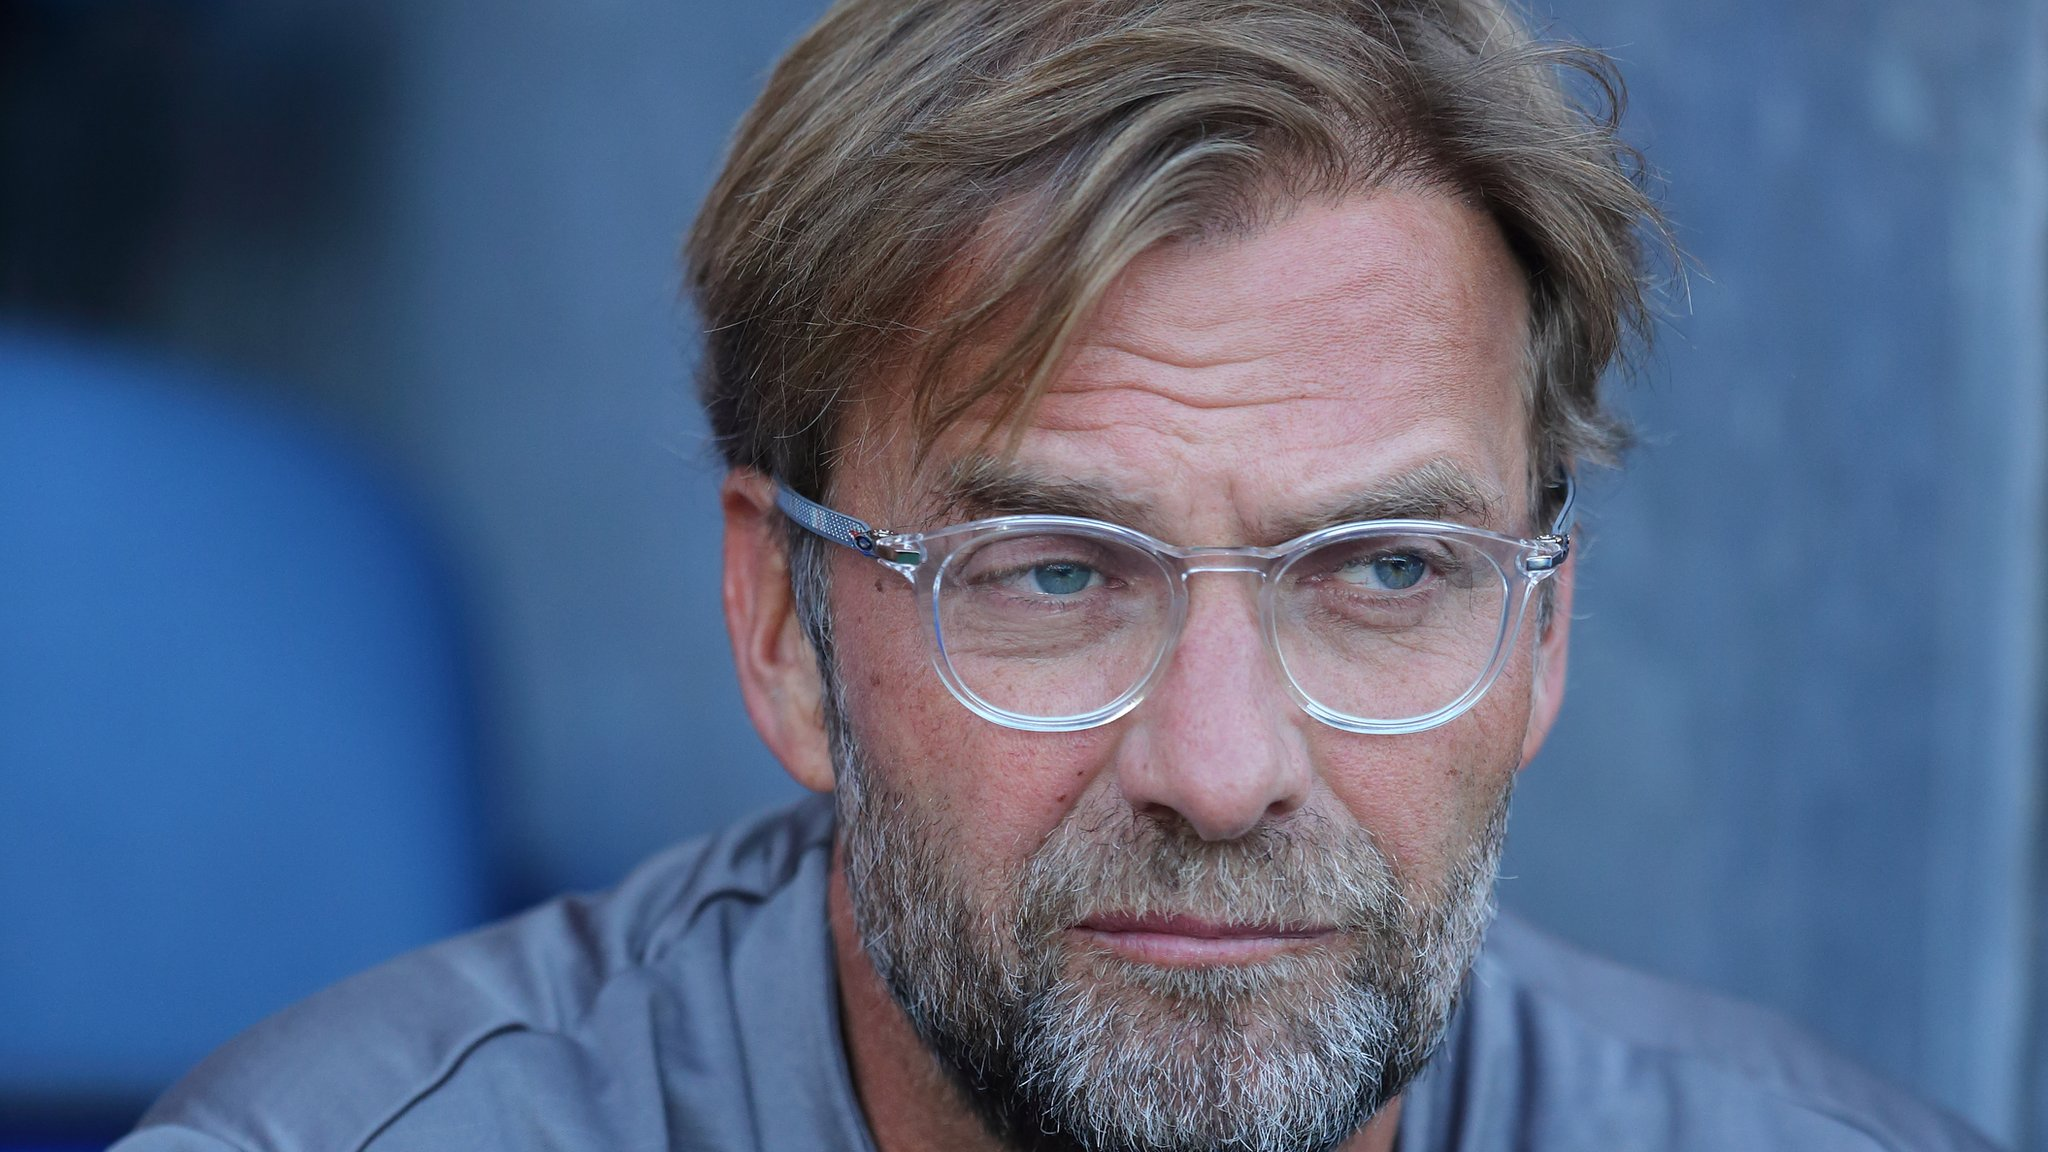 Klopp 'does not care' about being called a hypocrite for spending